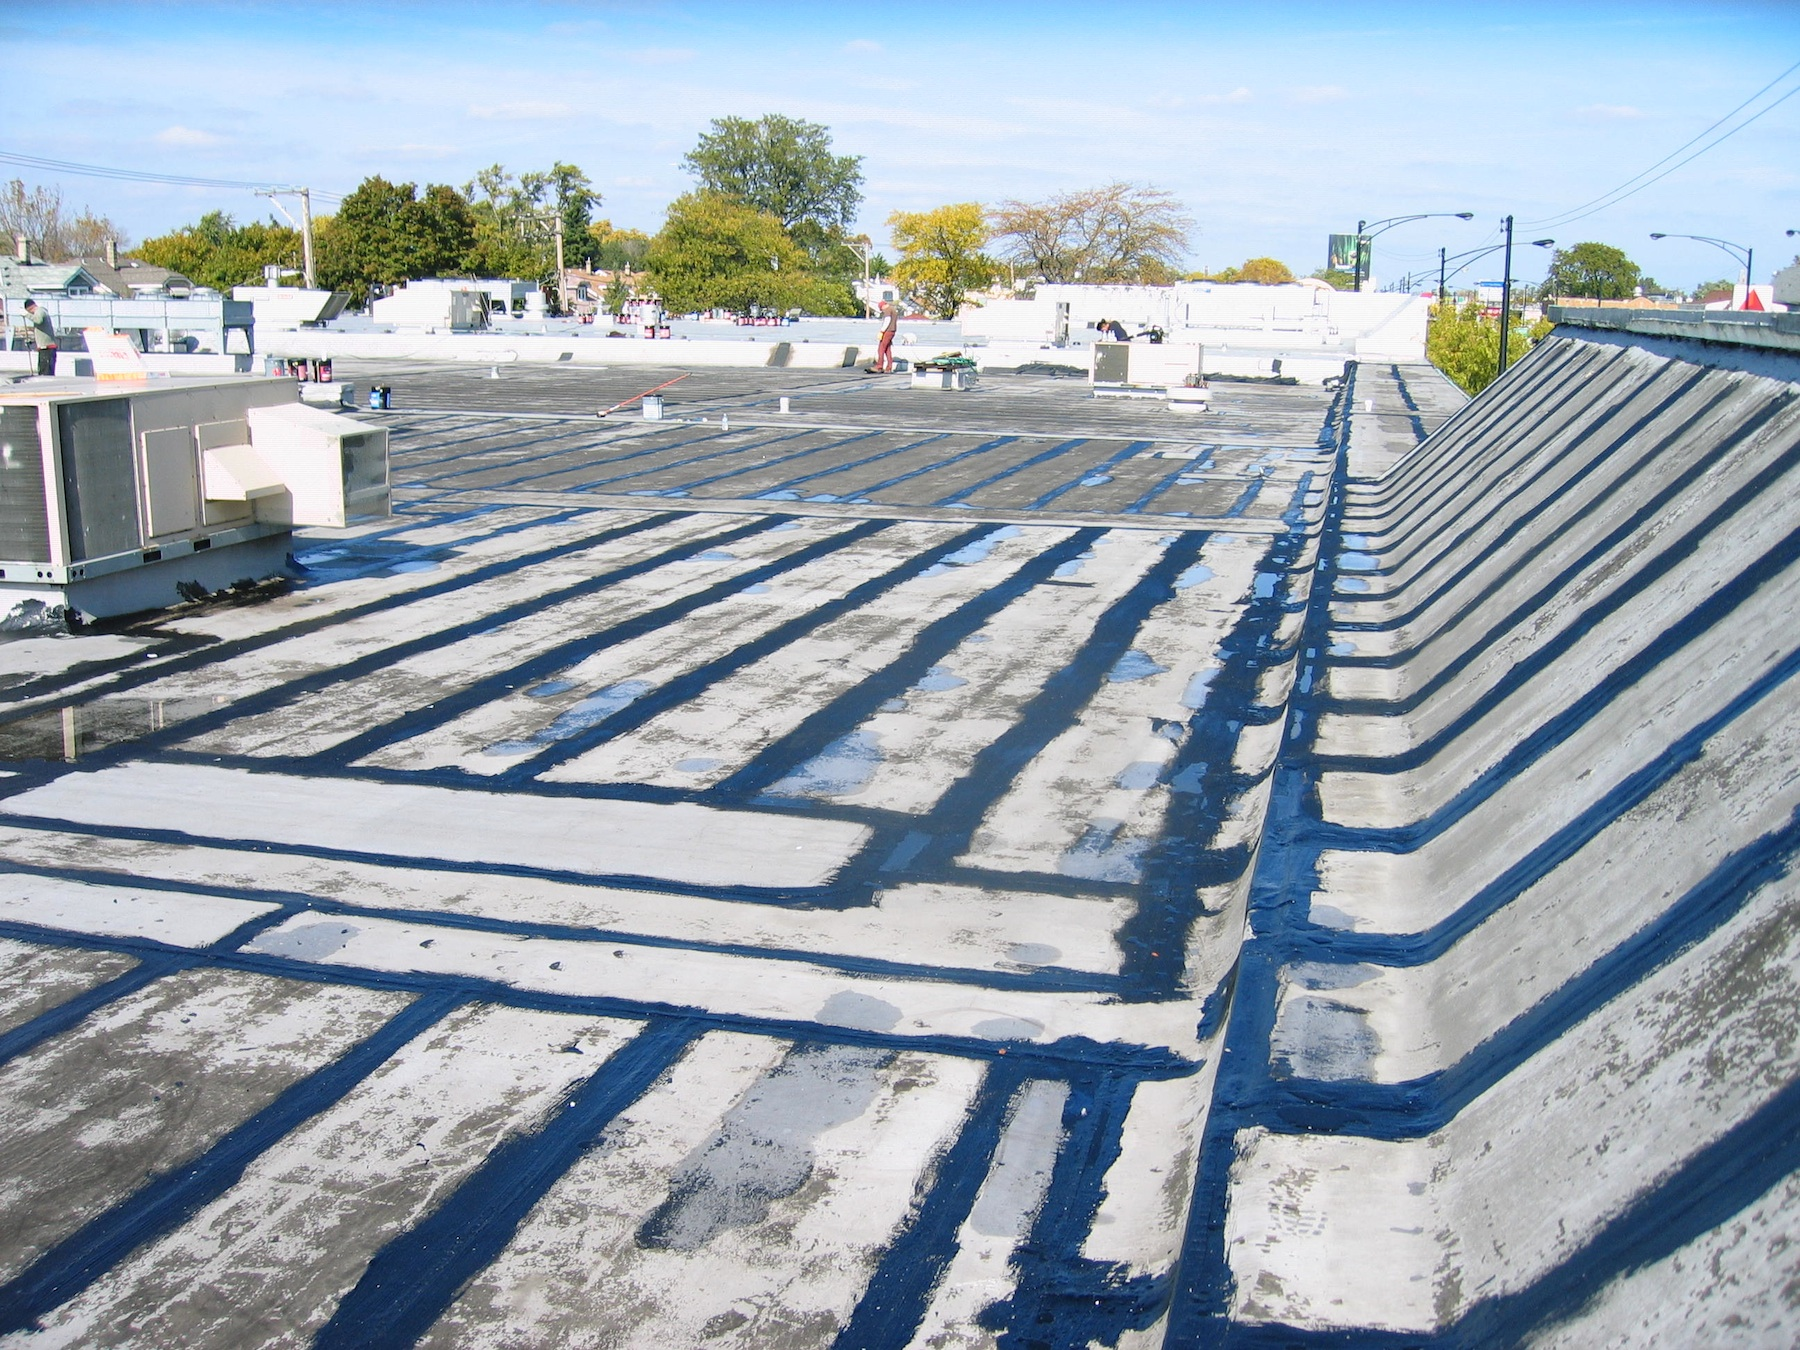 ... Prestige Portfolio Item 14 ... & Photo Gallery - Prestige Roofing INC. memphite.com